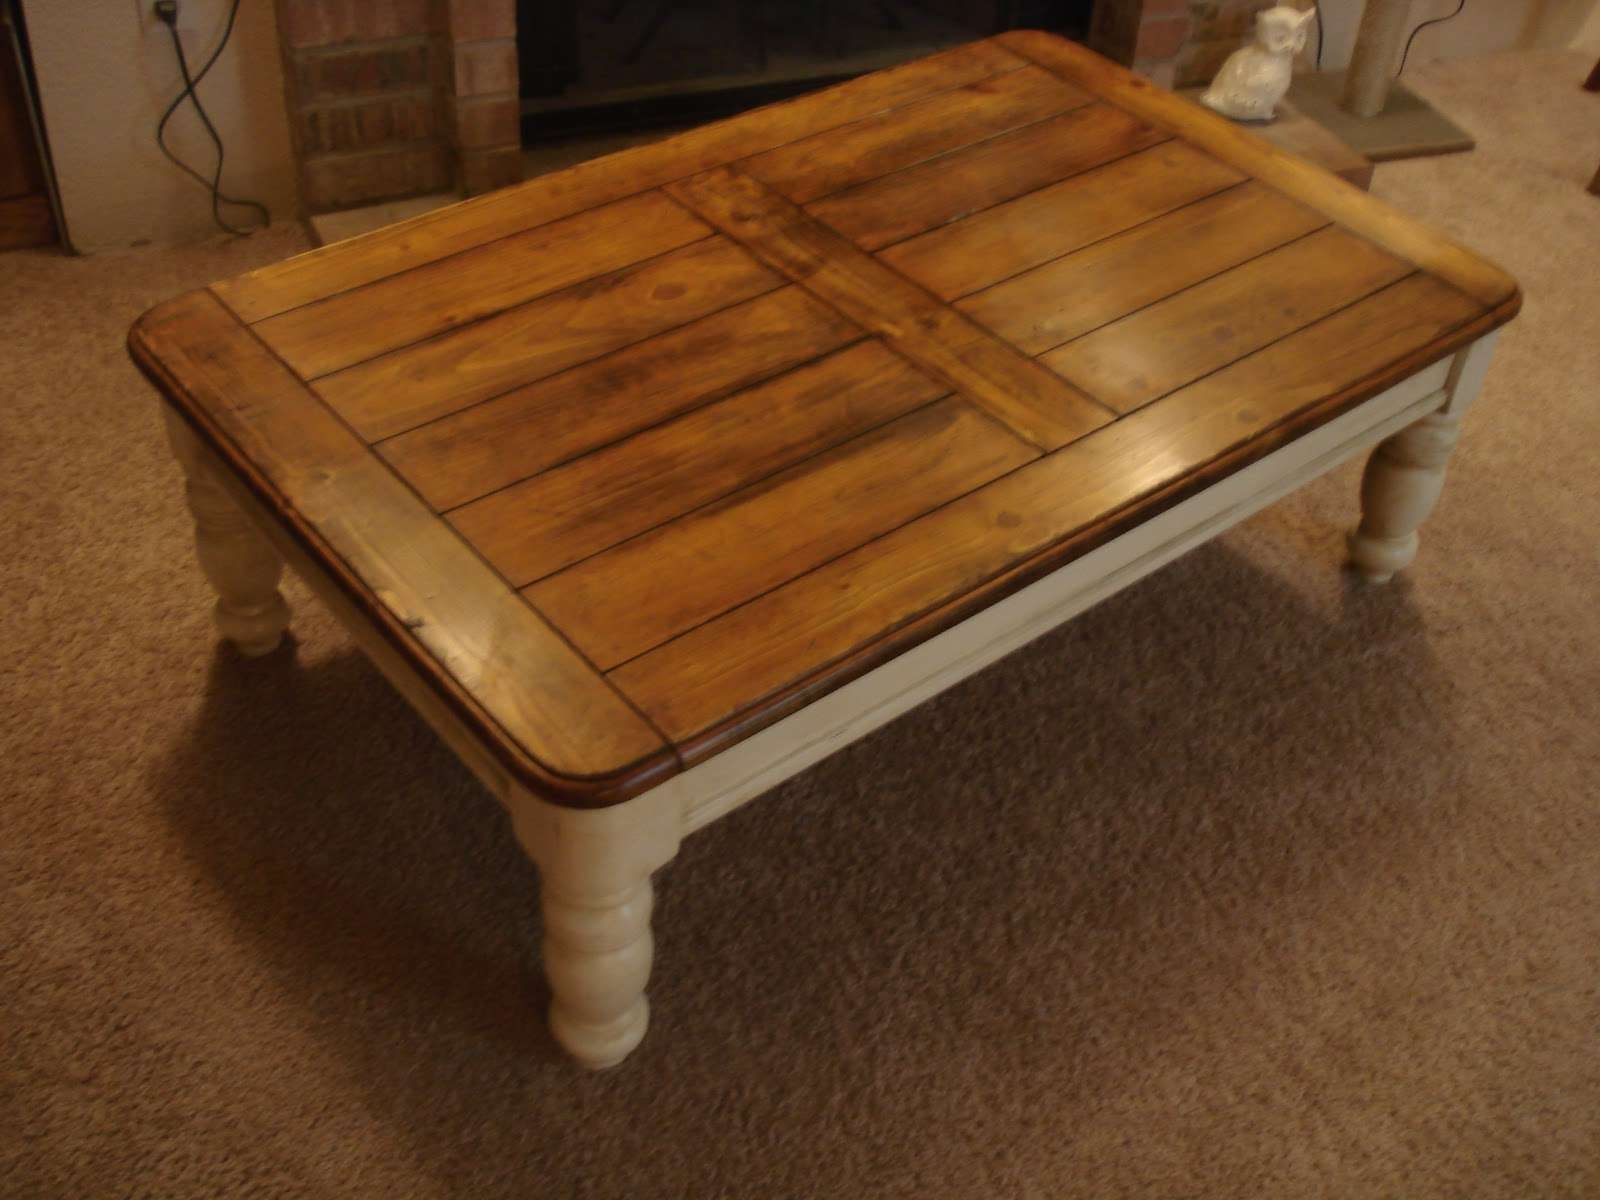 Widely Used Square Pine Coffee Tables In Weathered Wood Coffee Table – Distressed Wood End Table, Weathered (View 15 of 20)